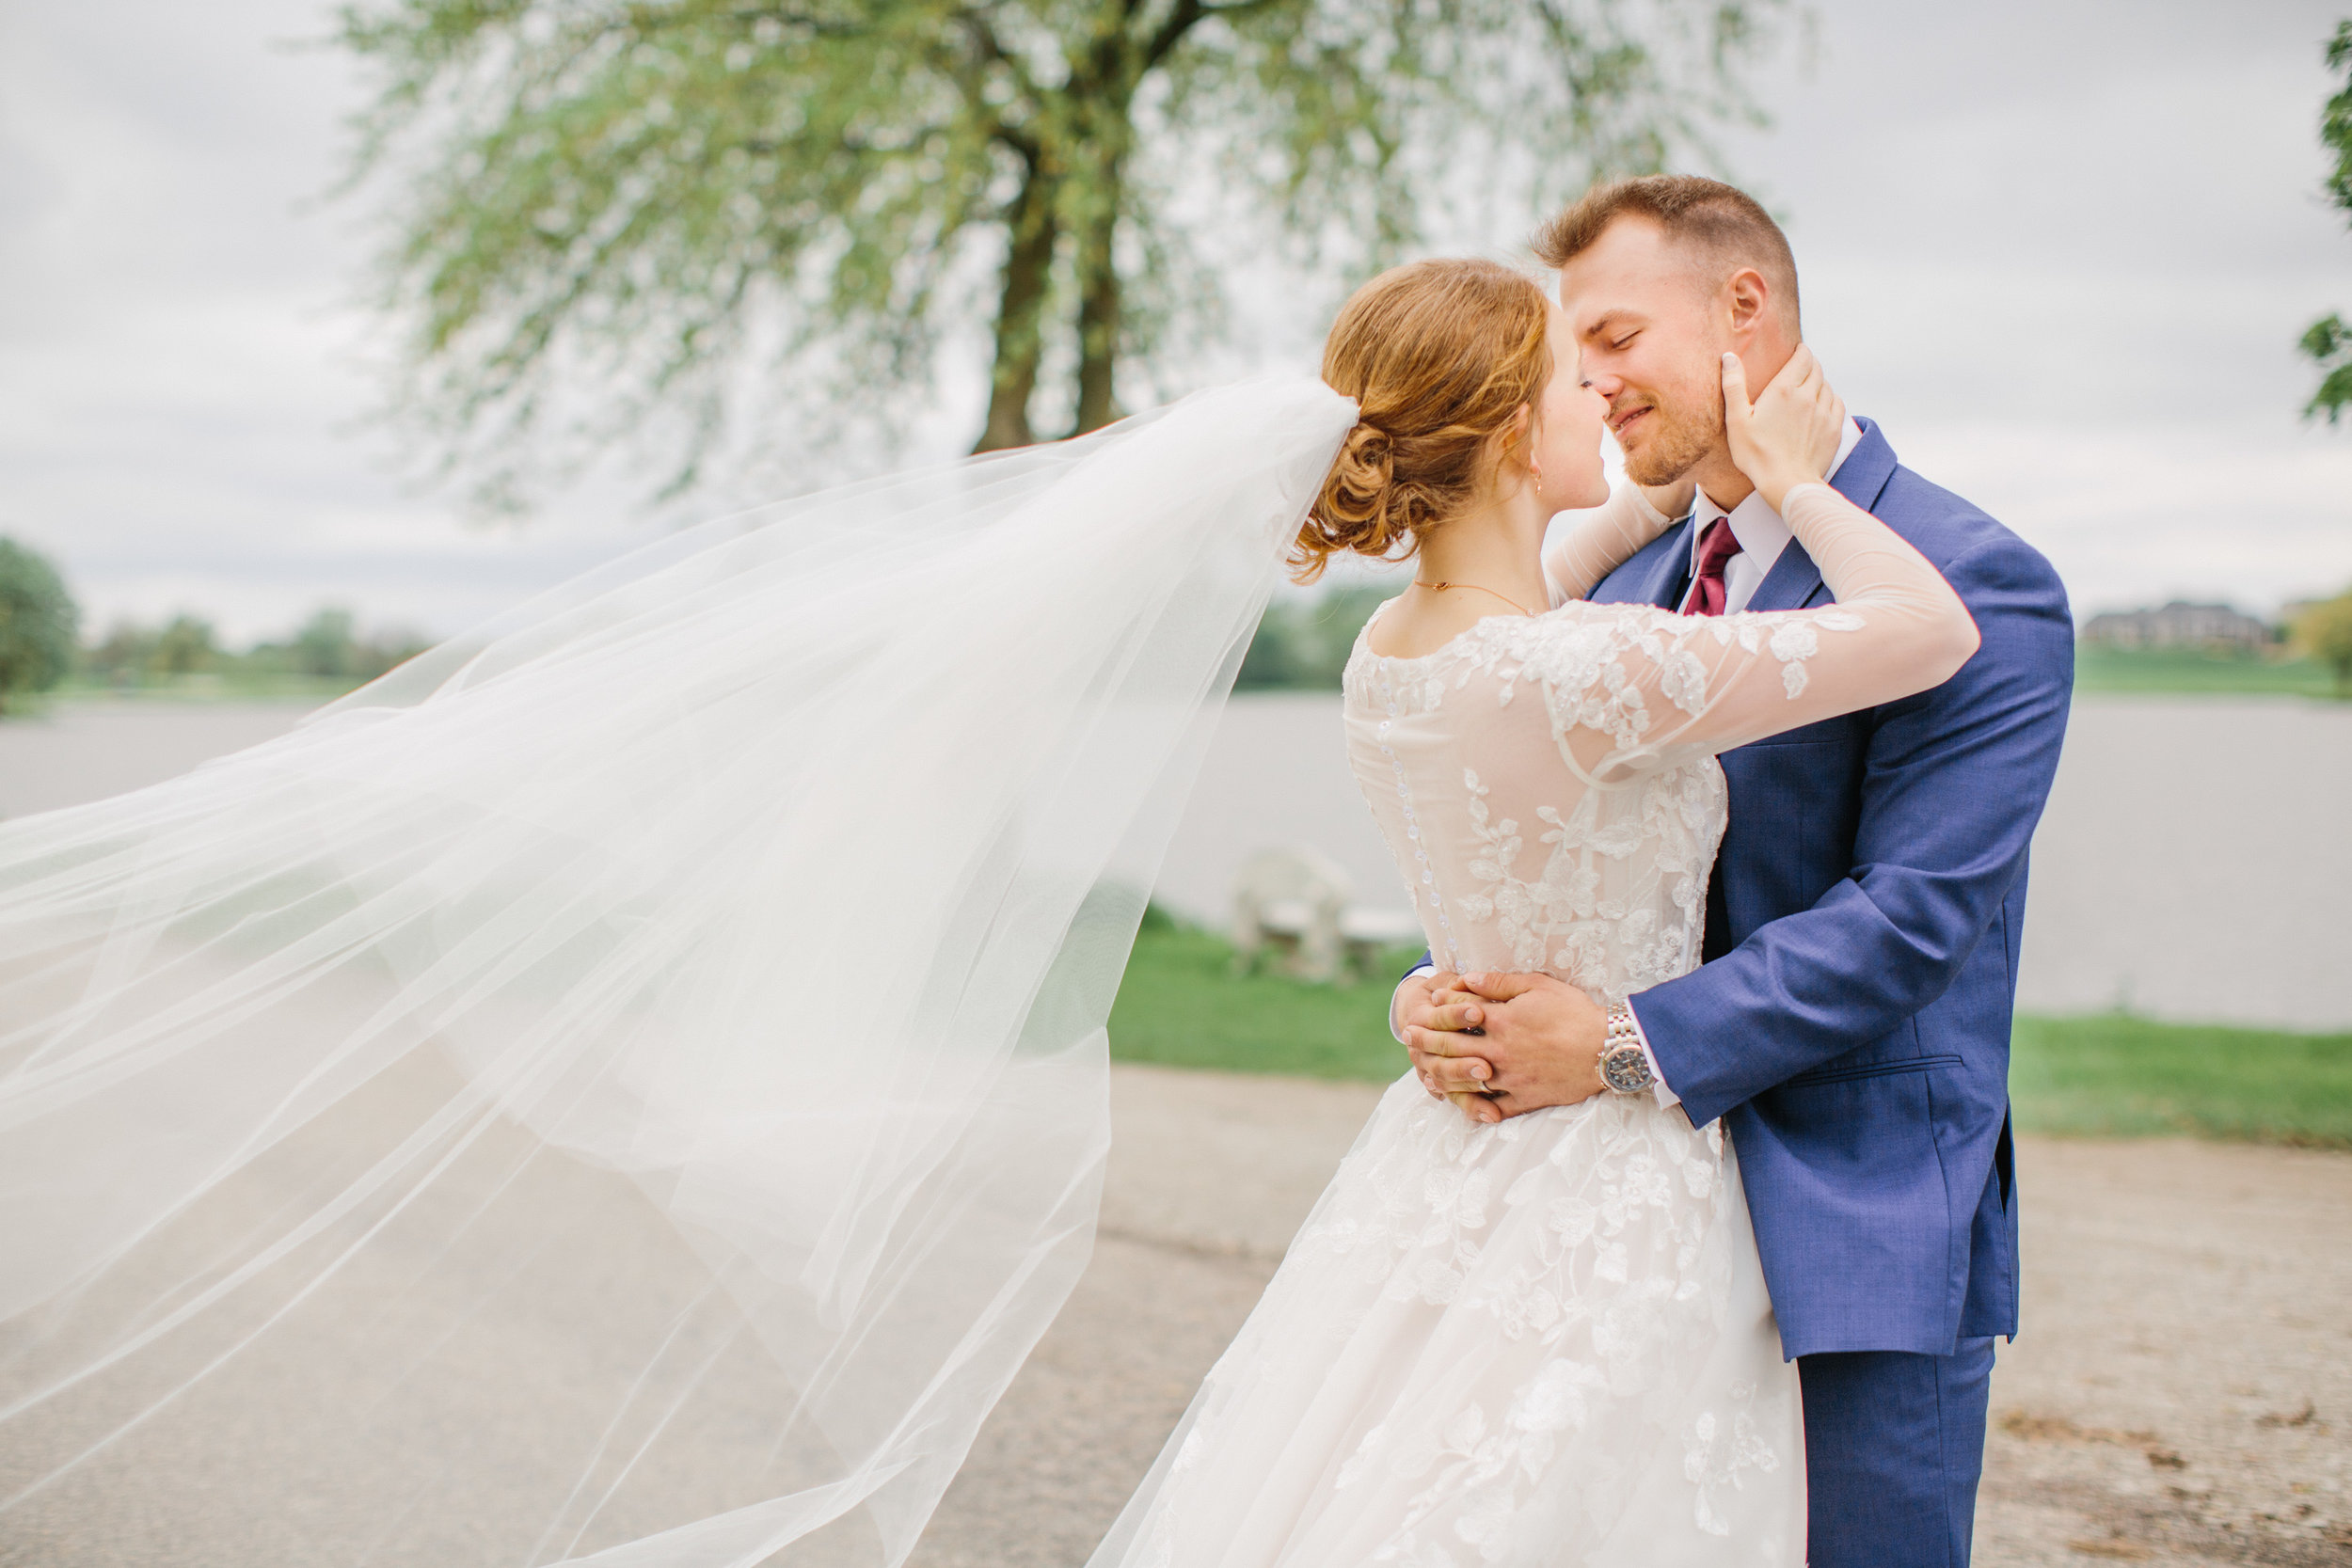 amelia renee is a premiere wedding photographer in West Des MOines Iowa